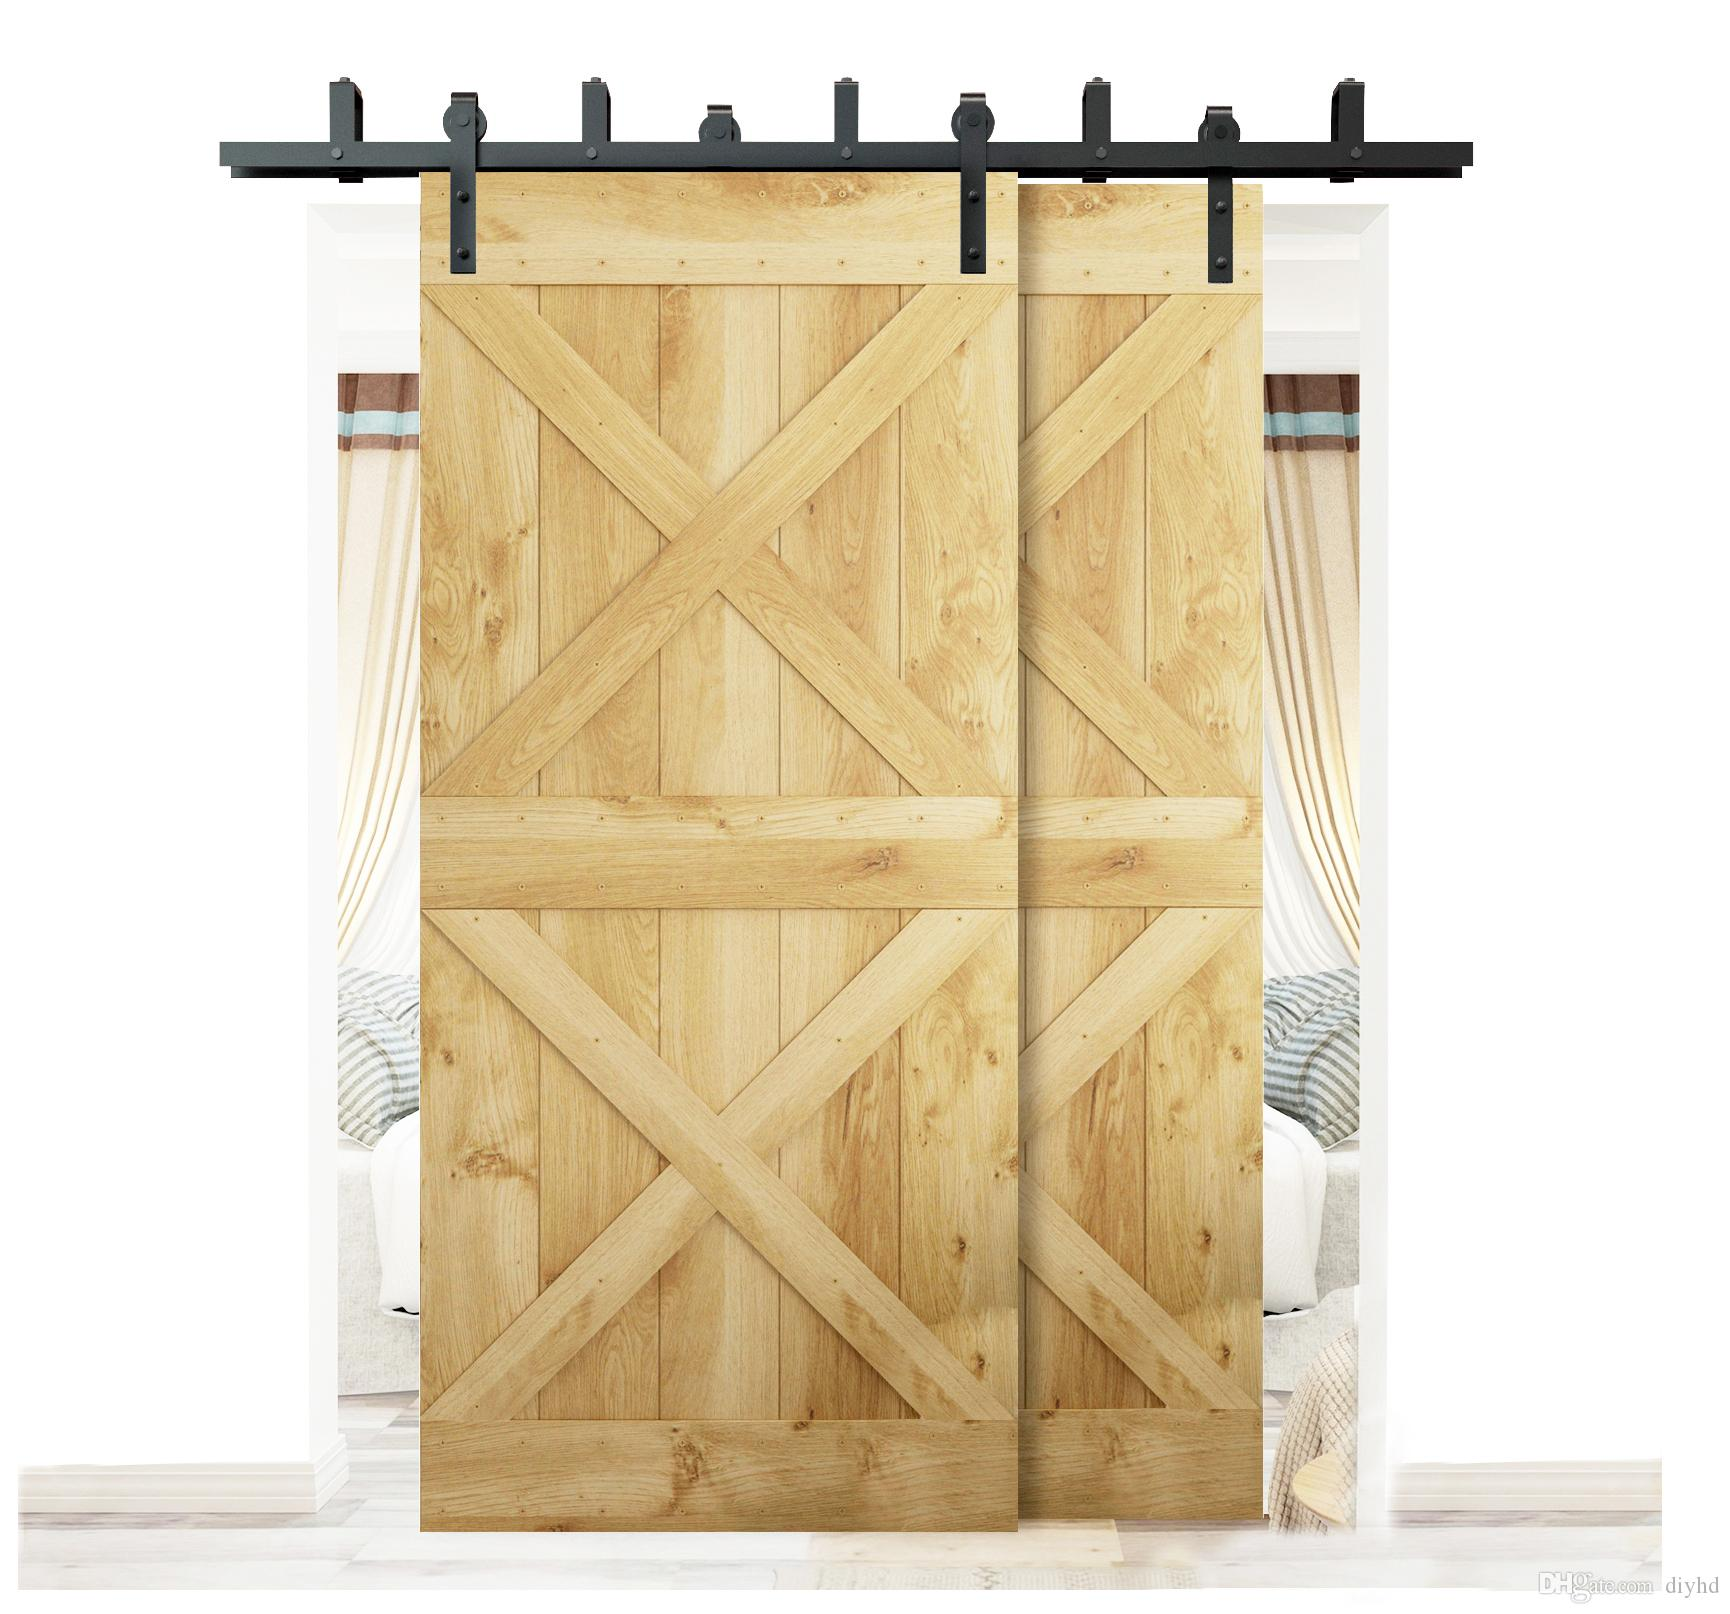 Diyhd 5 5ft 6ft bypass sliding barn wood closet door interior sliding door bent straight wheel hardware track kit bypass barn door barn wood door sliding